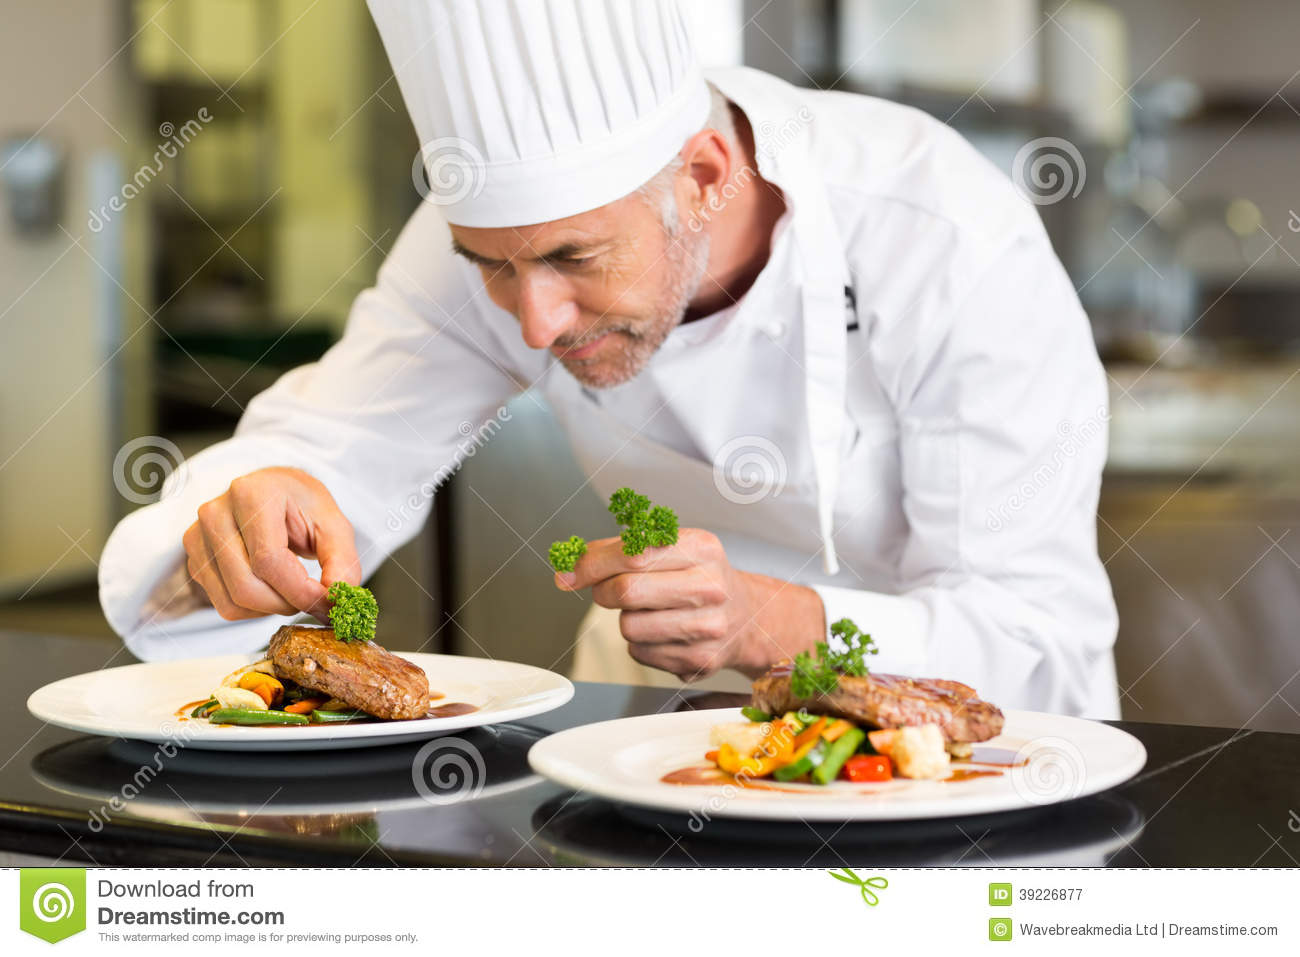 chef stock photos royalty free pictures rh dreamstime com fat chef pictures for the kitchen chef pictures for kitchen walls